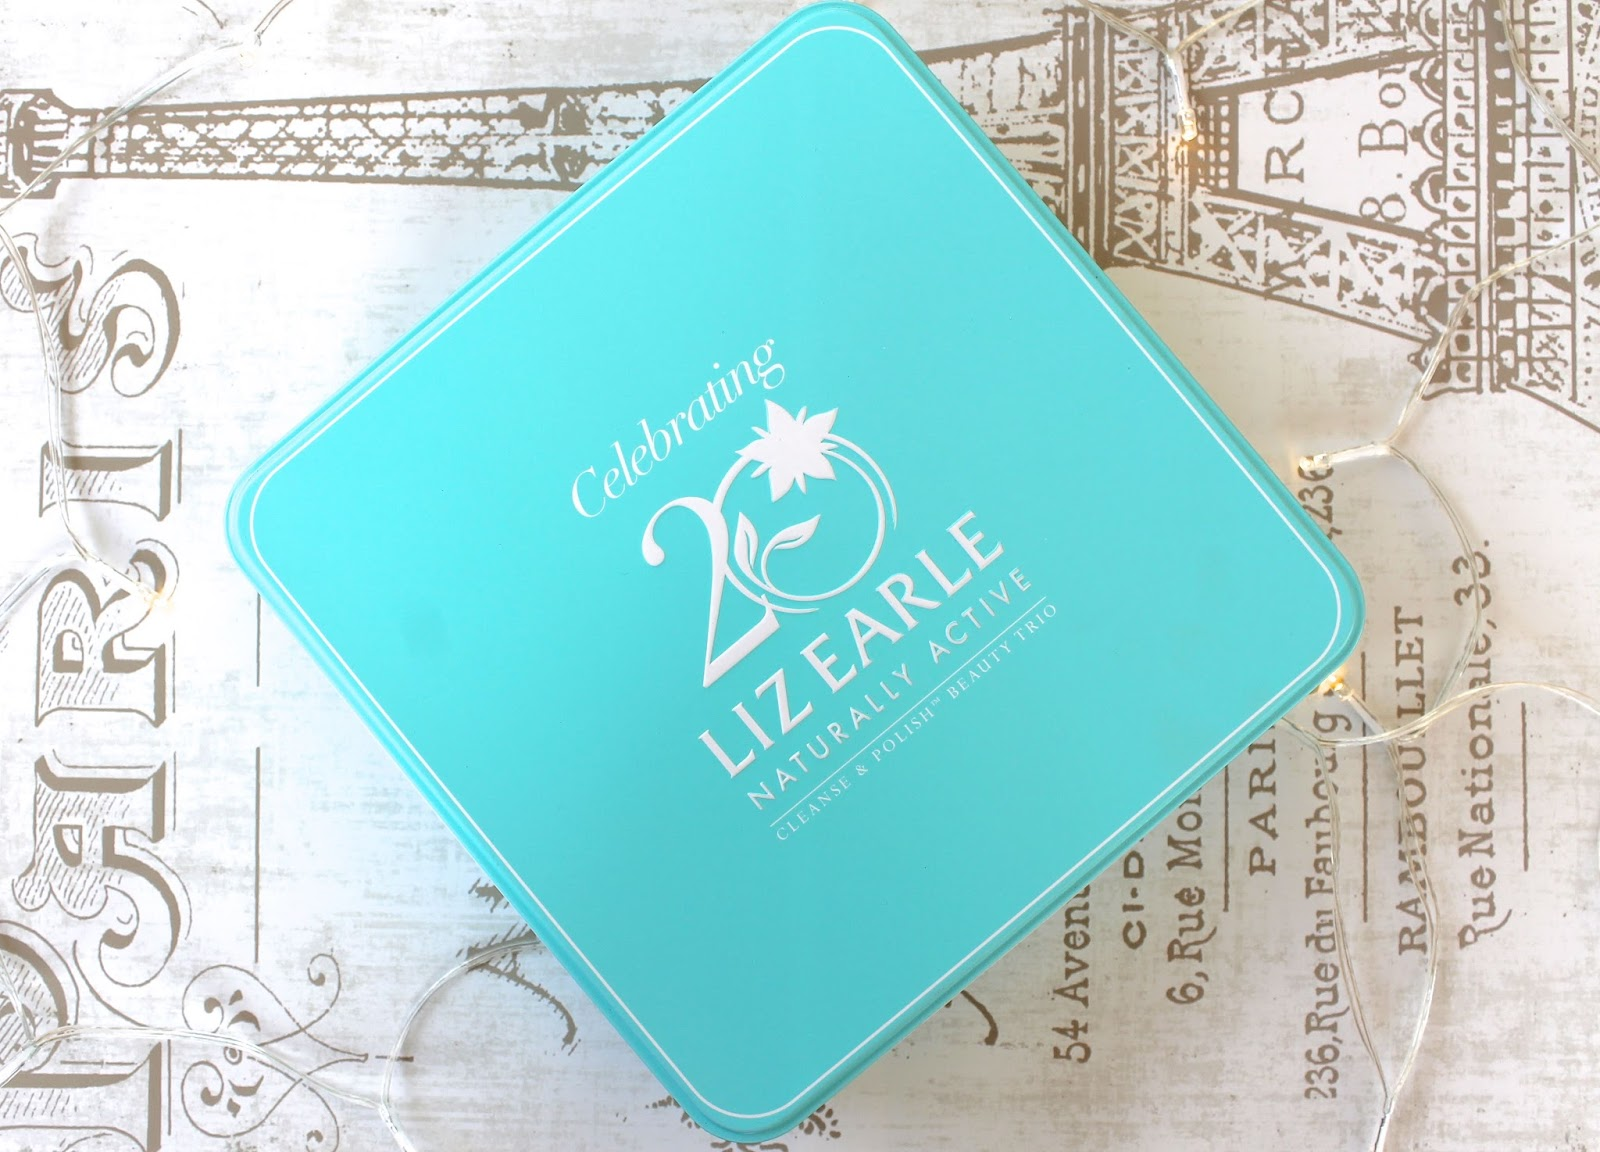 Liz Earle Cleanse & Polish trio